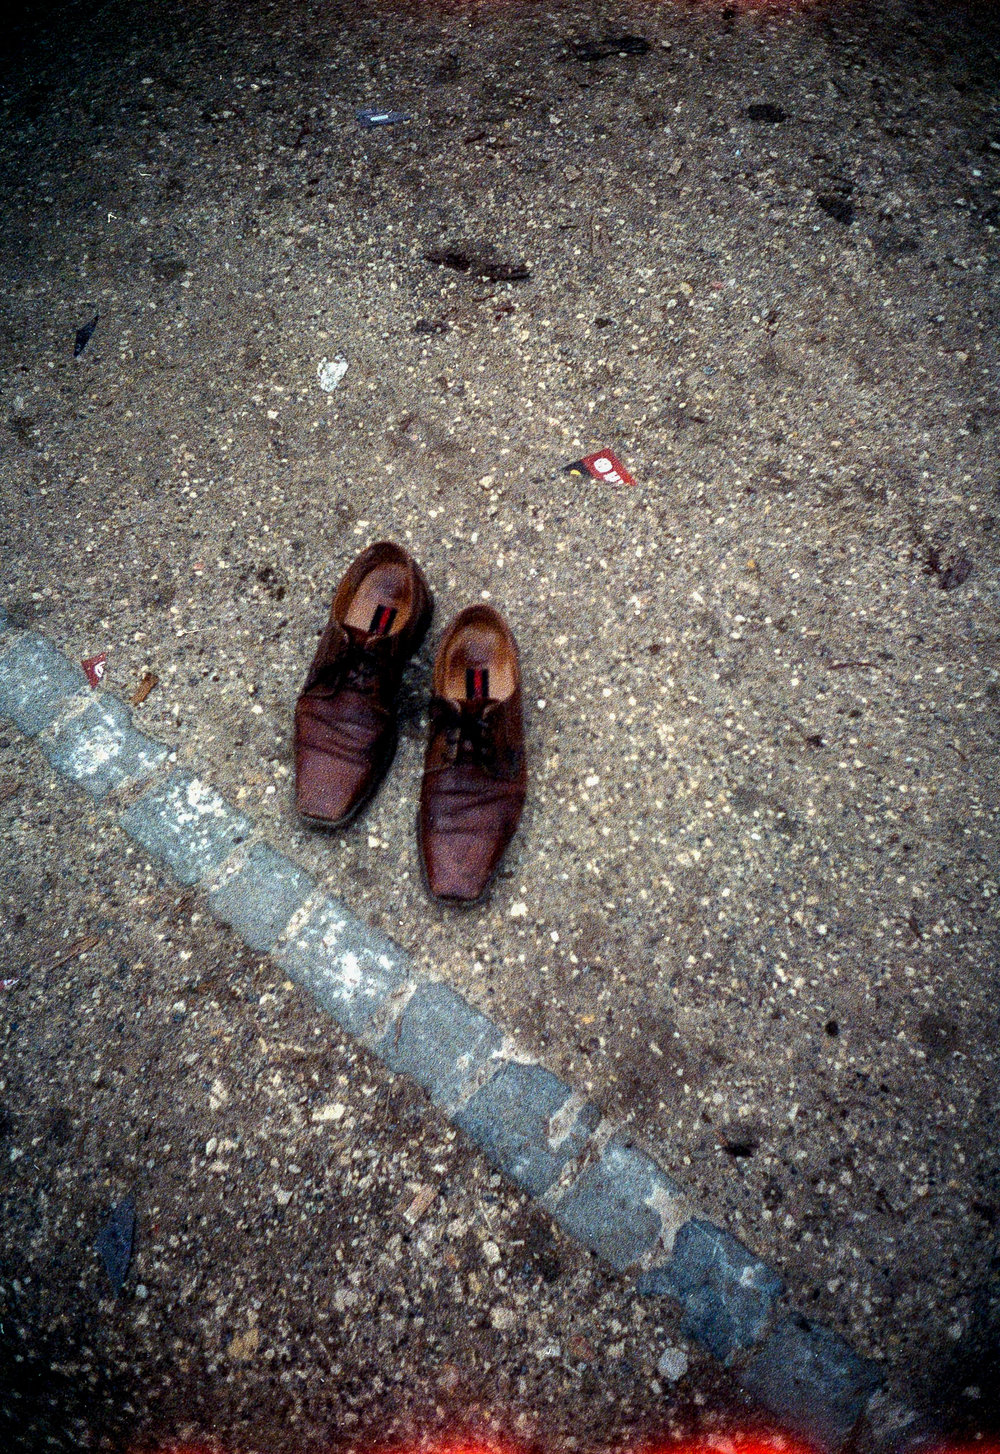 Shoes to Fill | Ricoh Auto Half | Expired AGFA portrait 160 | Daniel Stoessel